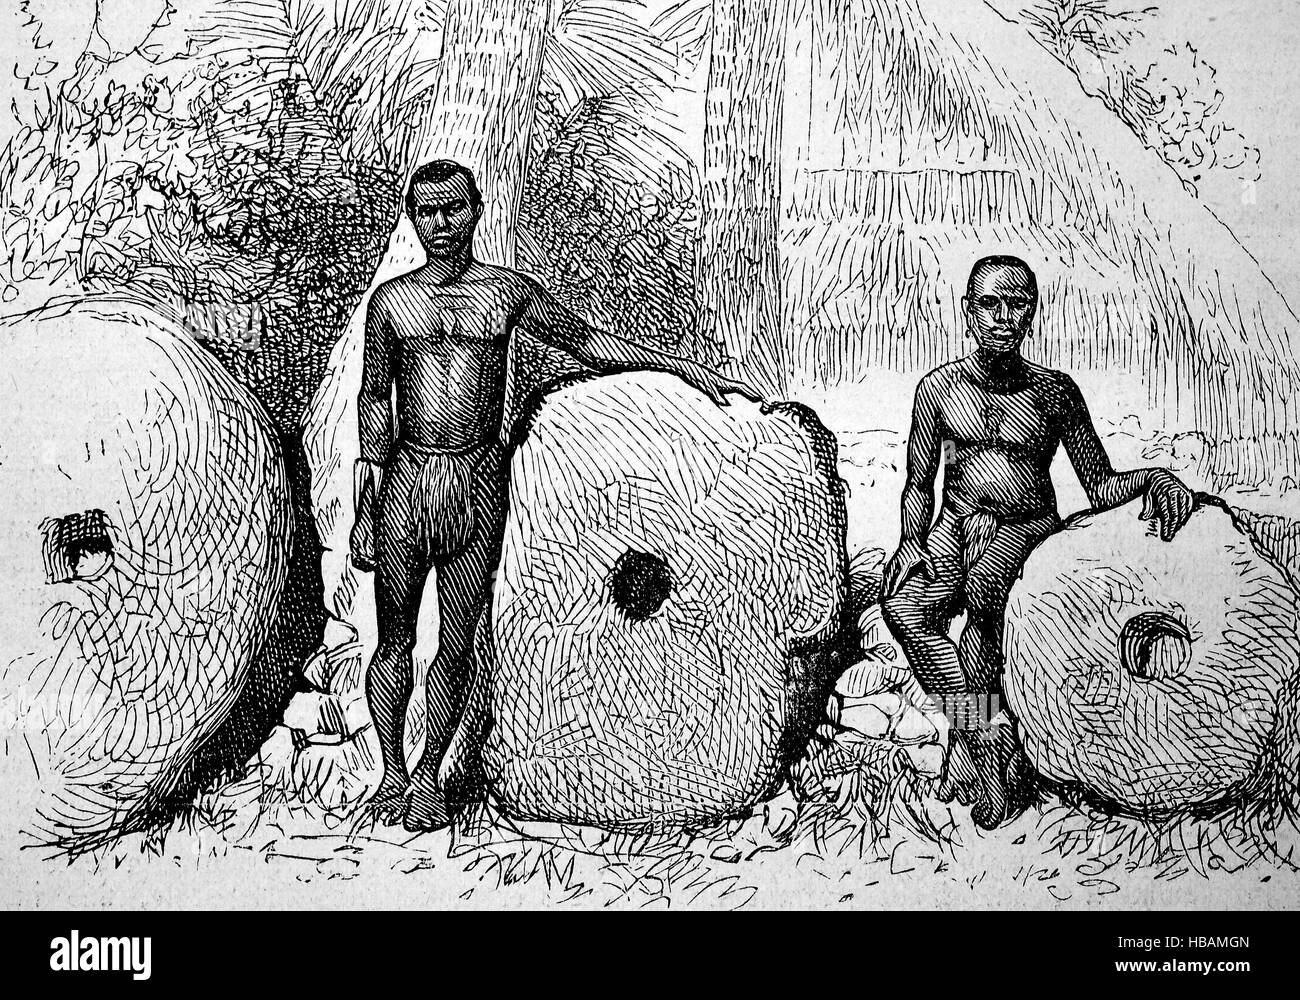 Rai, or stone money circular stone disks carved out of limestone, quarried on several of the Micronesian islands, - Stock Image